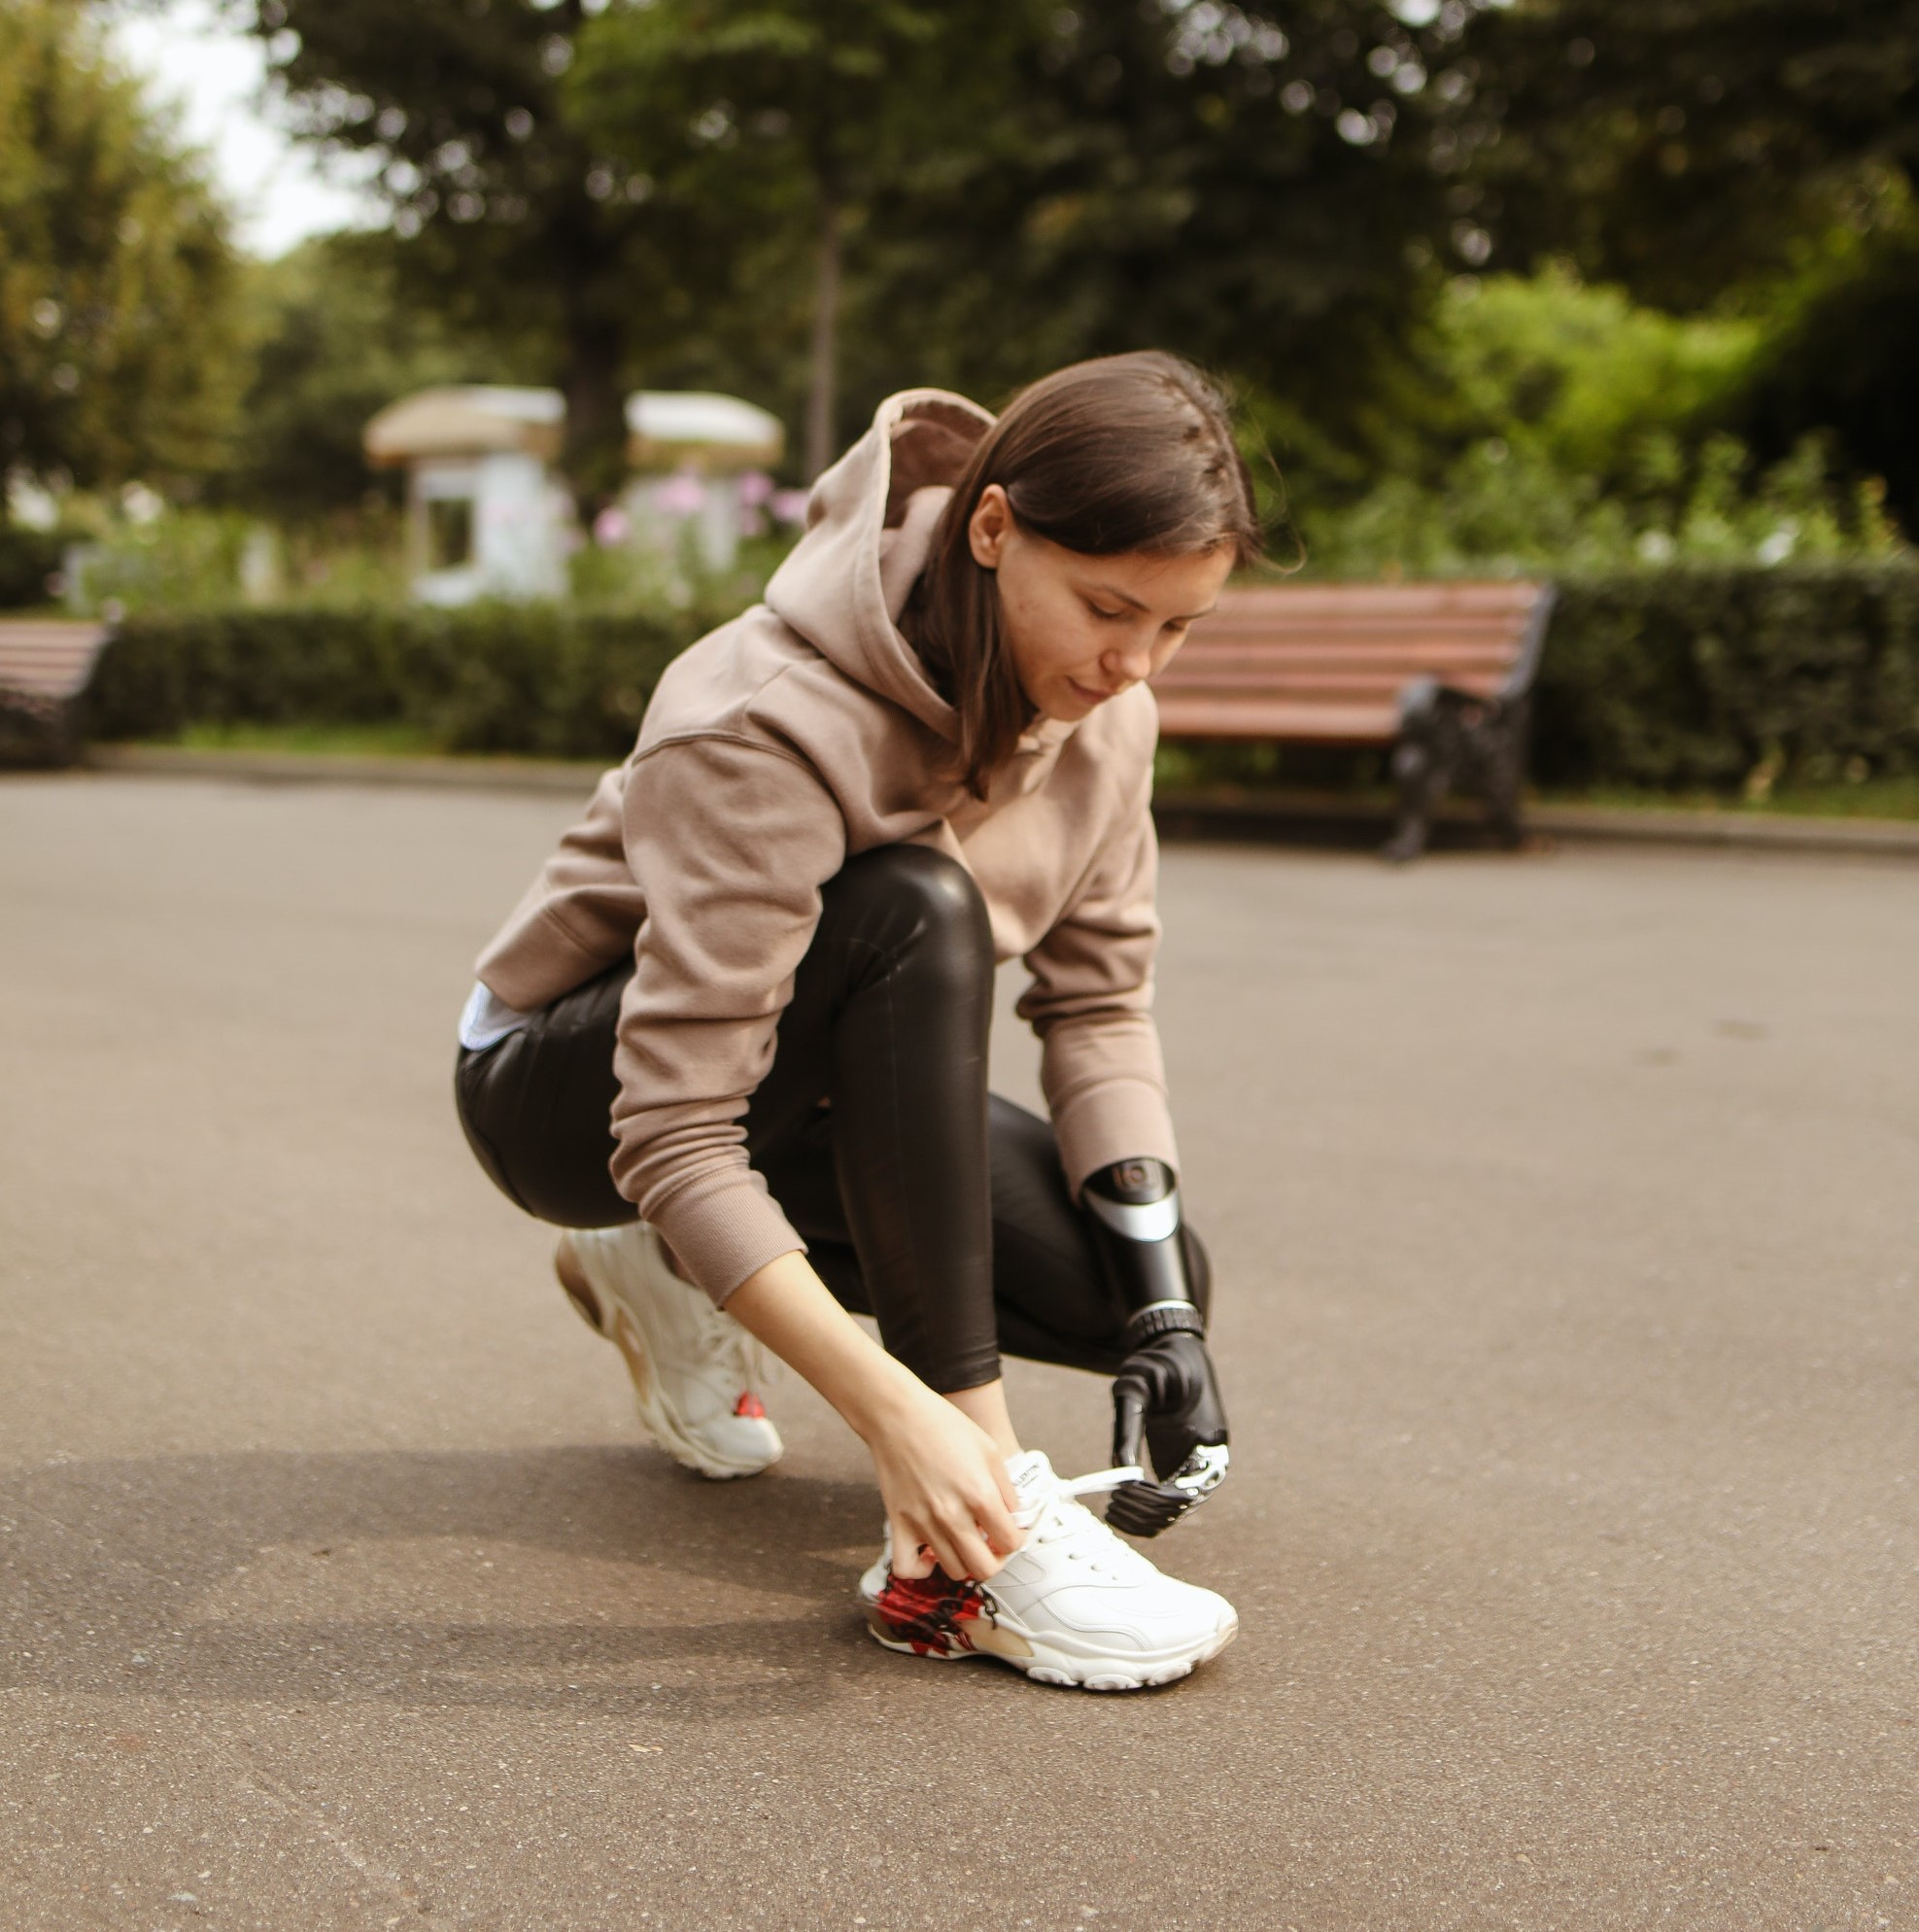 A woman bends down to tie her shoe